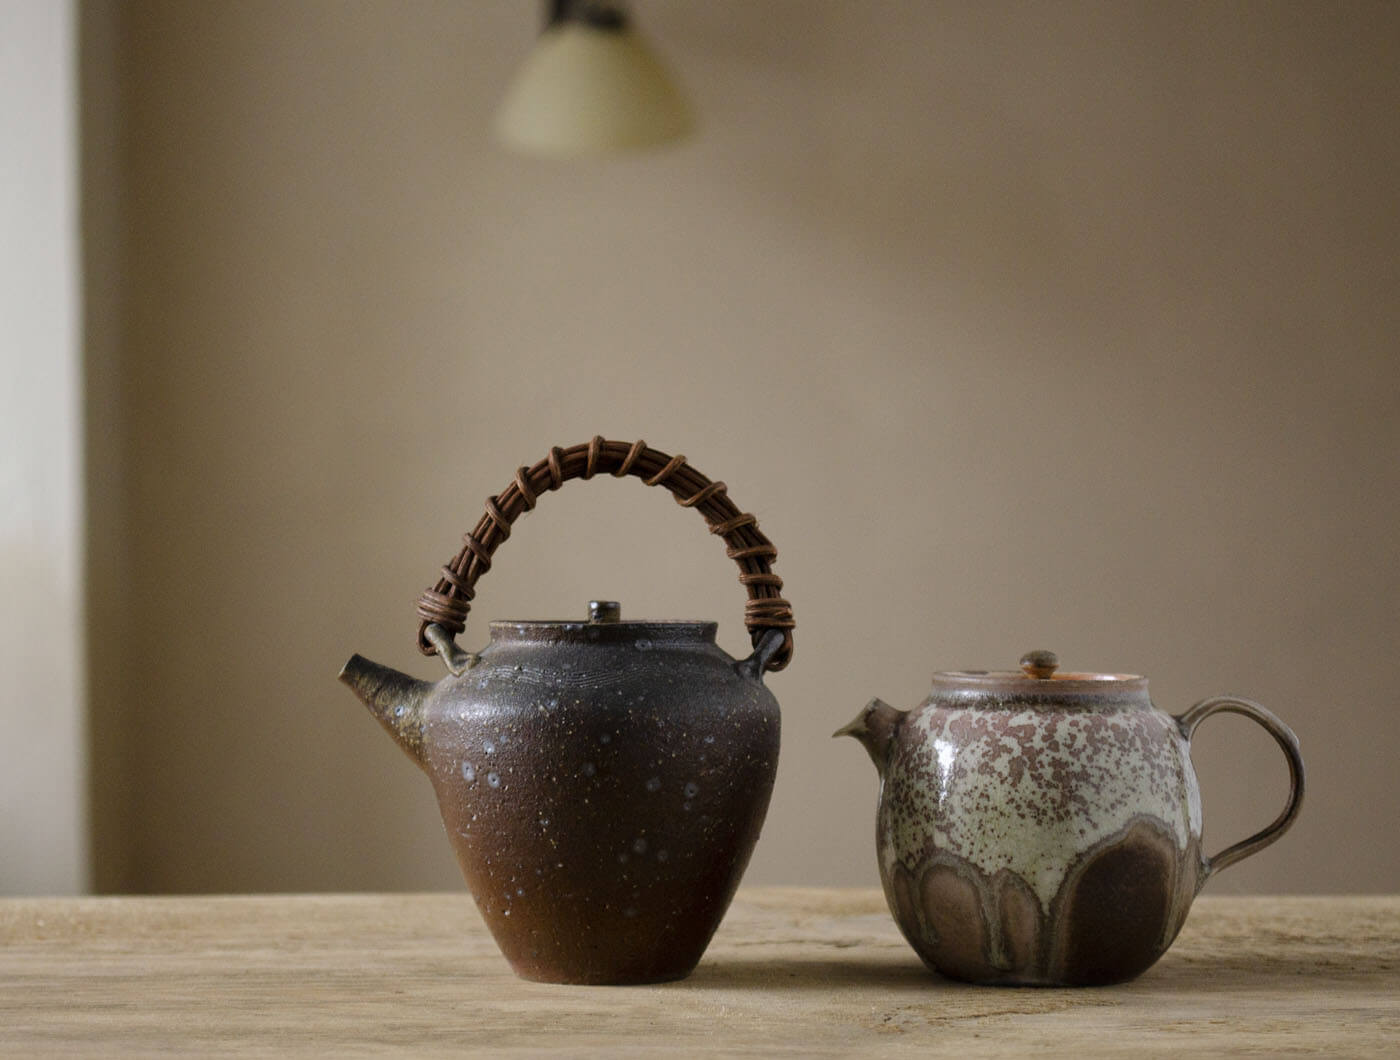 Patipatti Teapots - Handmade for gong fu brewing